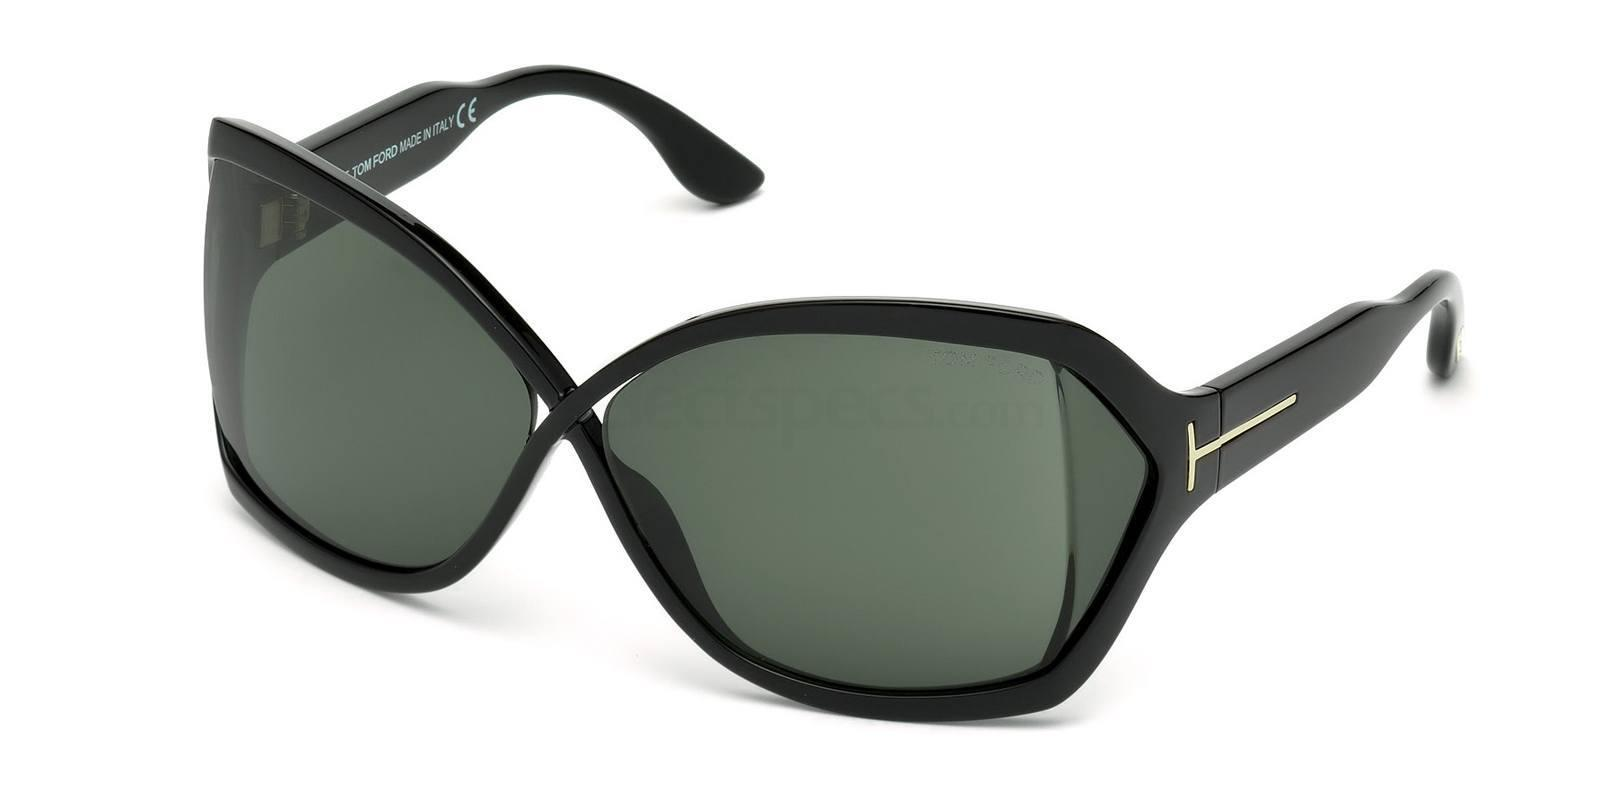 01N FT0427 Sunglasses, Tom Ford